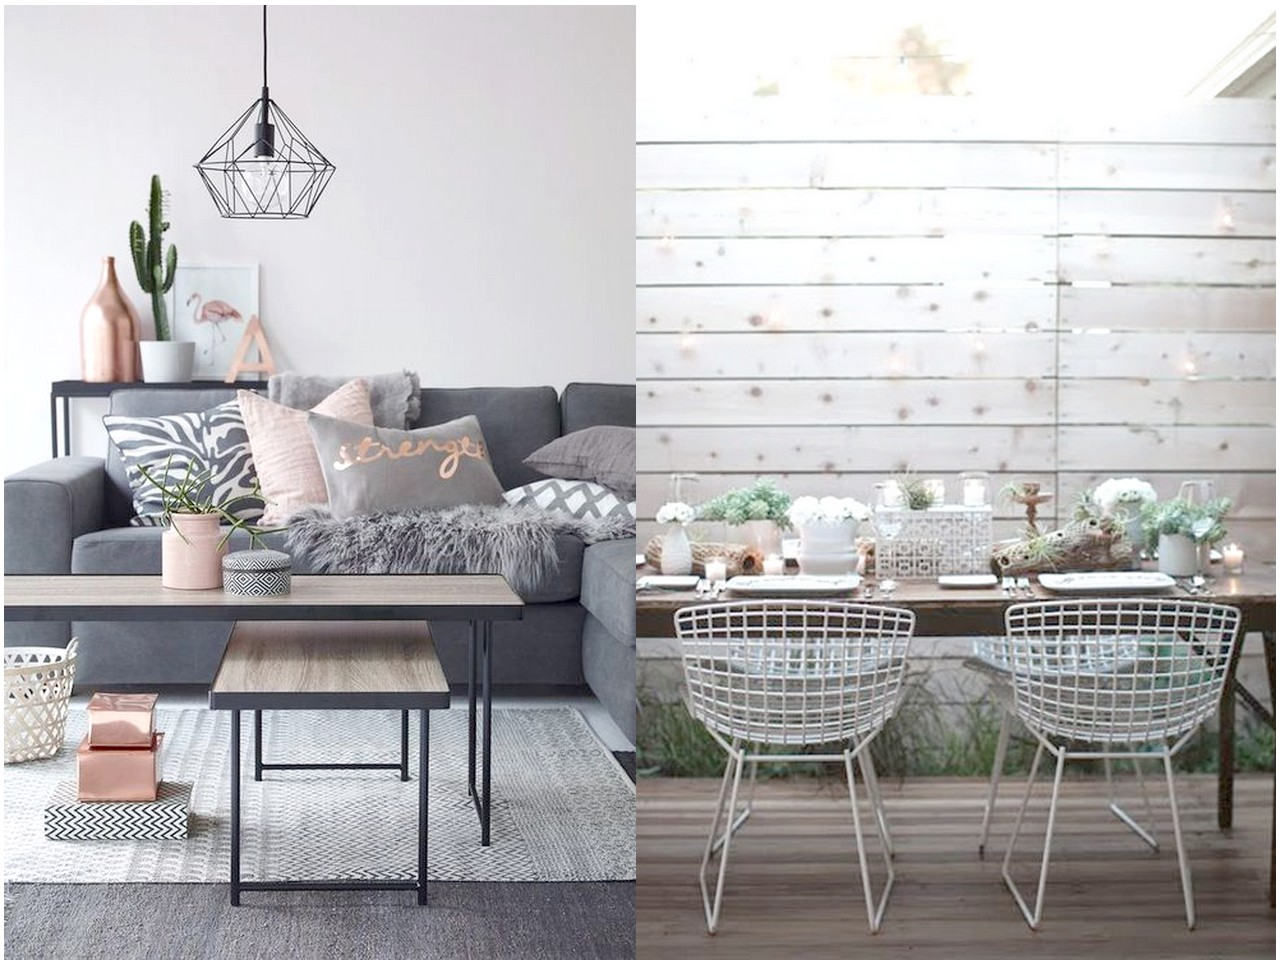 Tendencias 2016 2017 decorar con metal for Tendencias decoracion